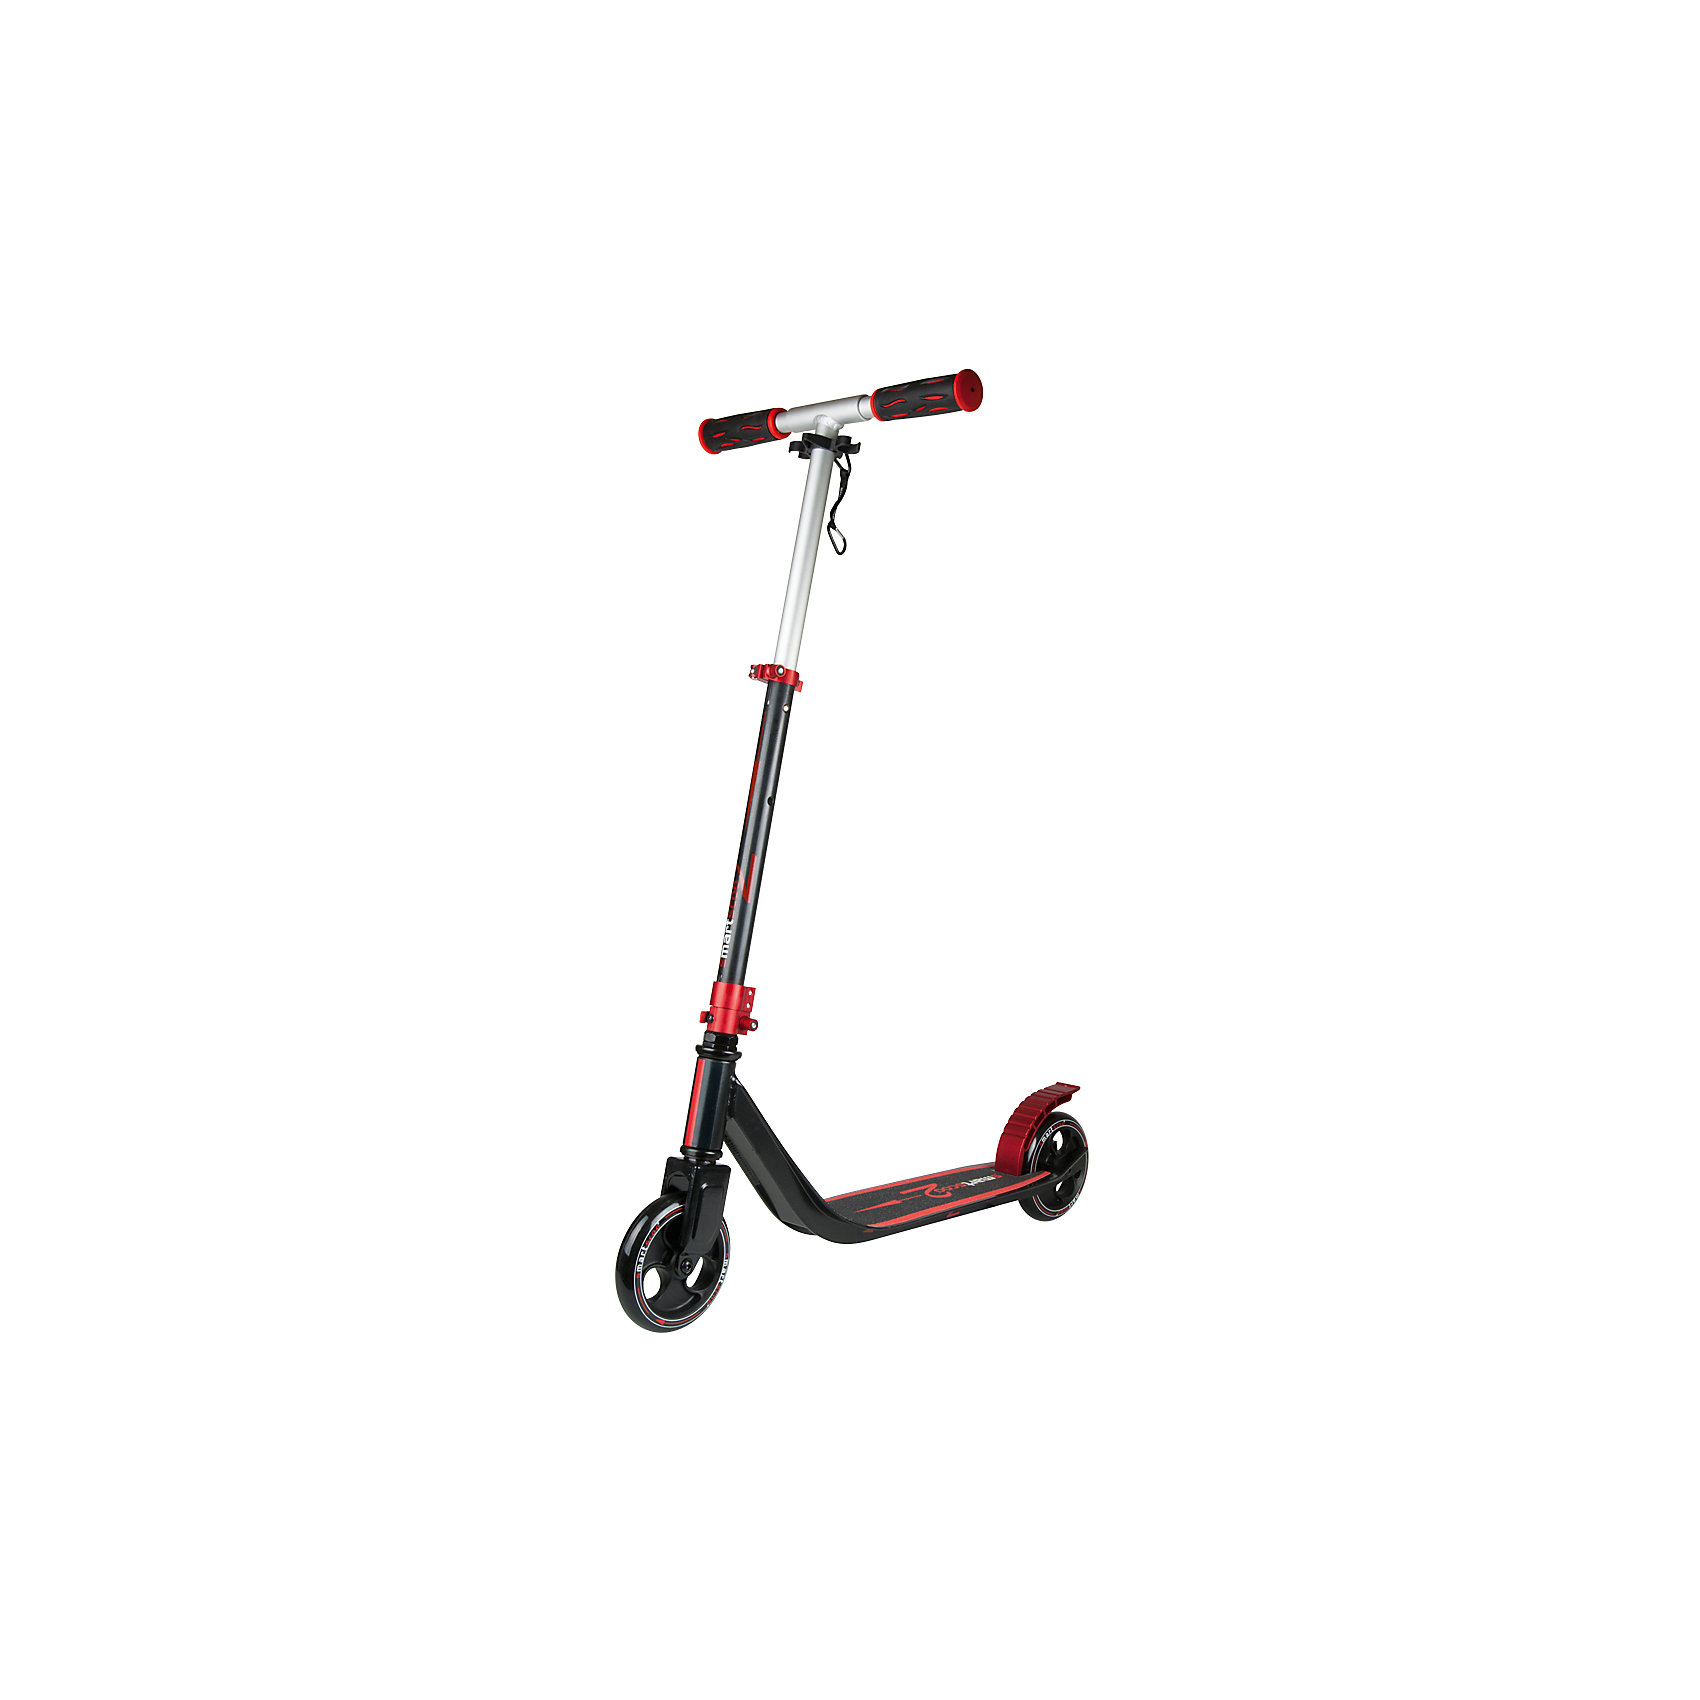 - Самокат Smartscoo2 Straight Red самокат складной fun4u smartscoo 200mm black orange